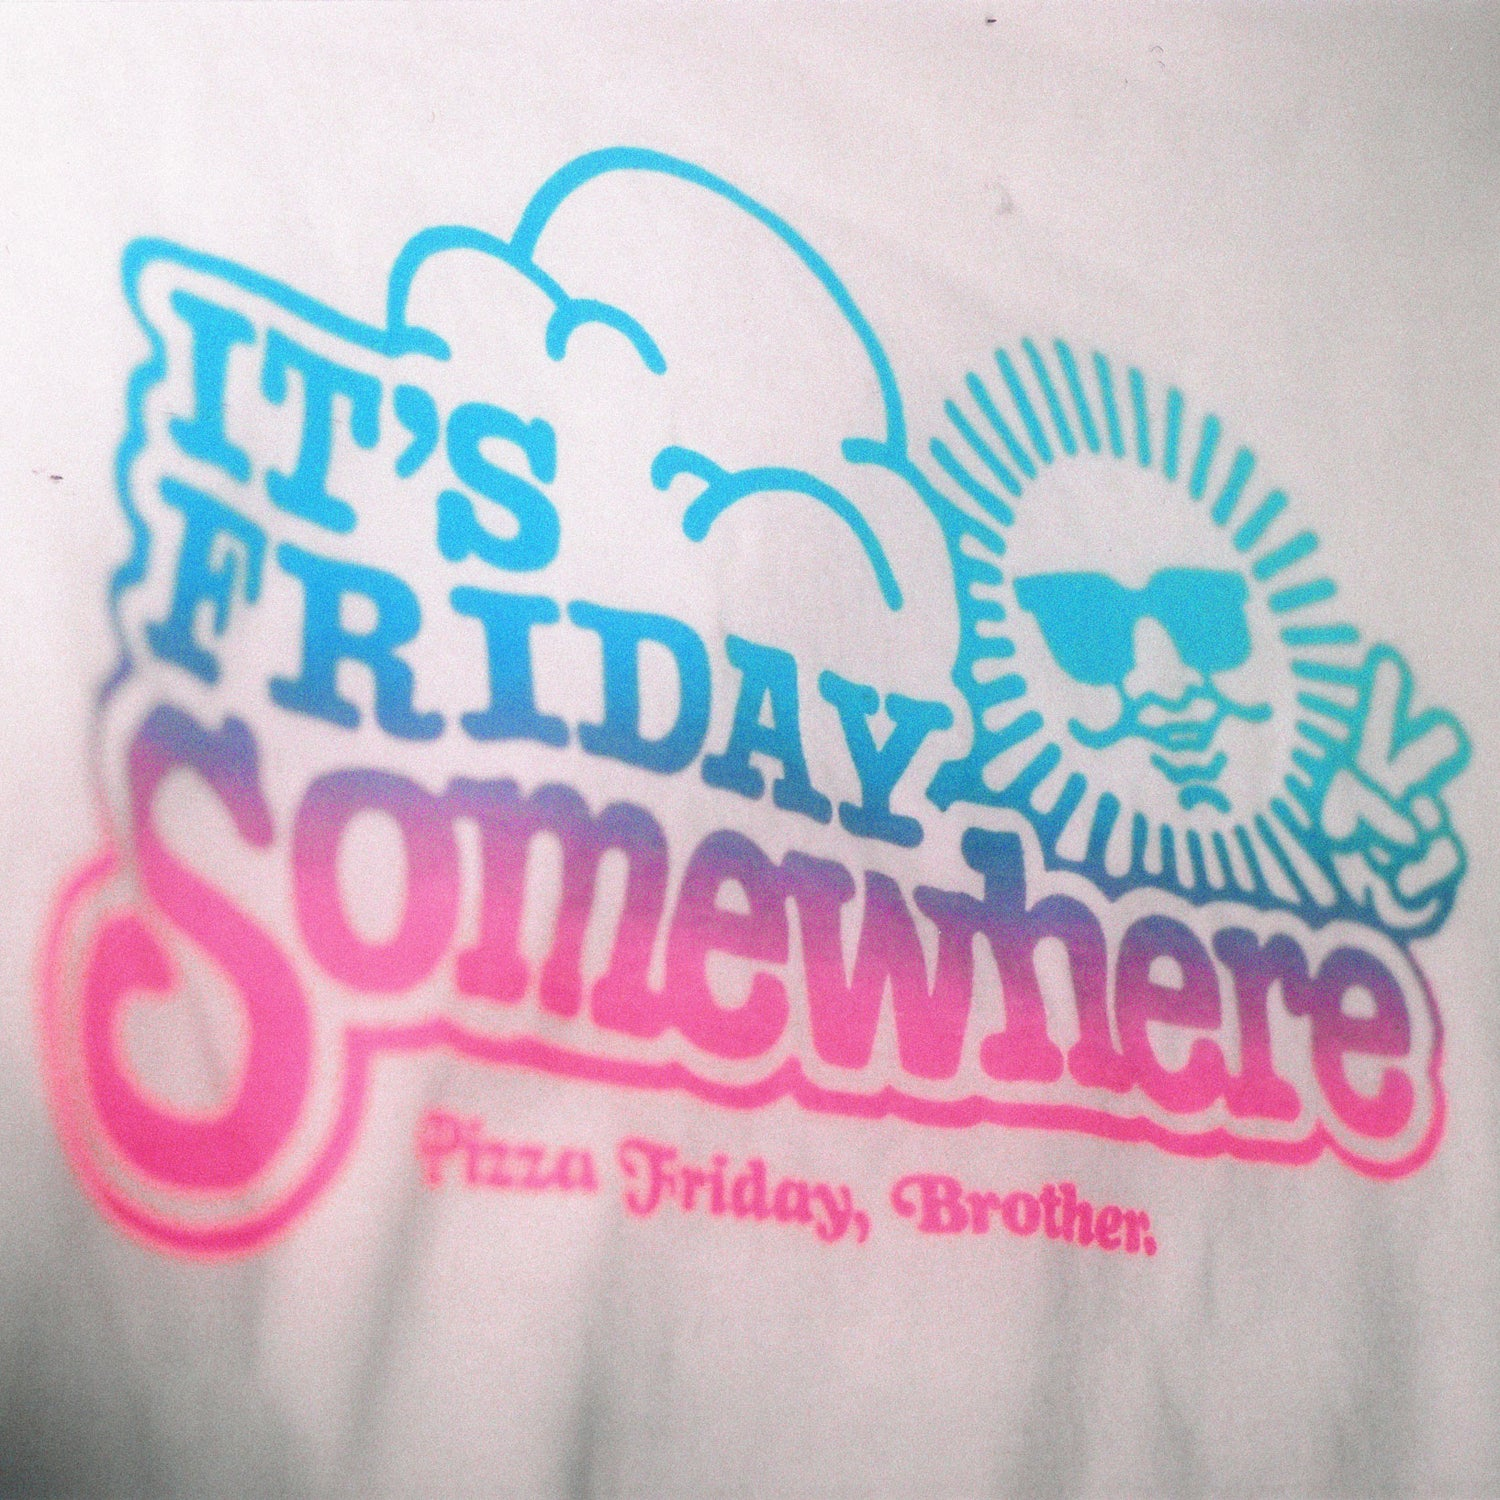 Image of It's Friday Somewhere Tee